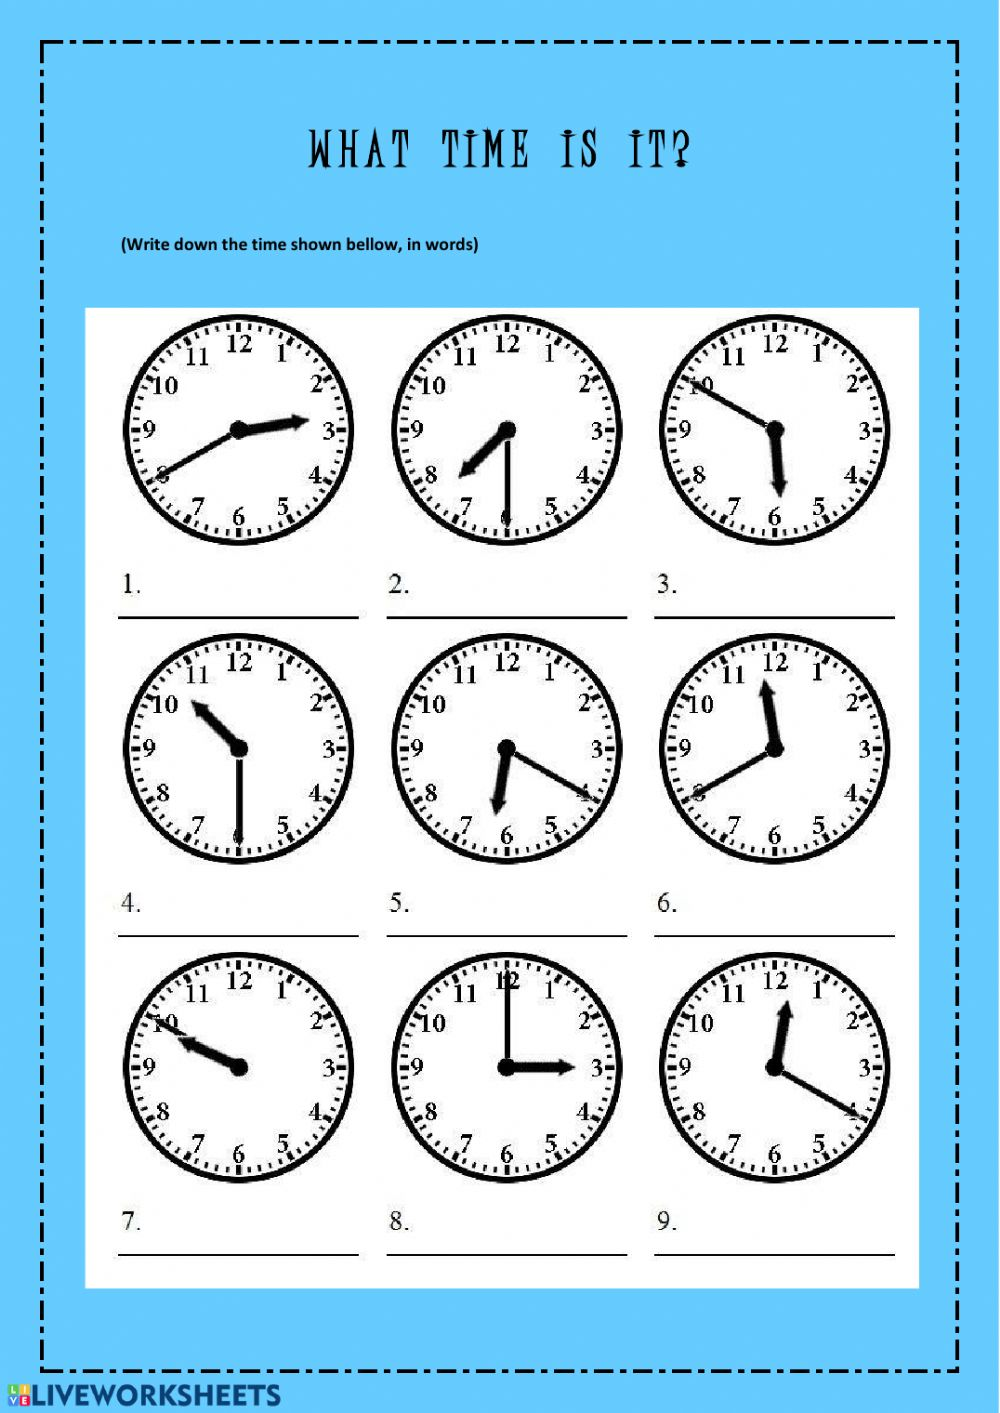 What time is it interactive activity